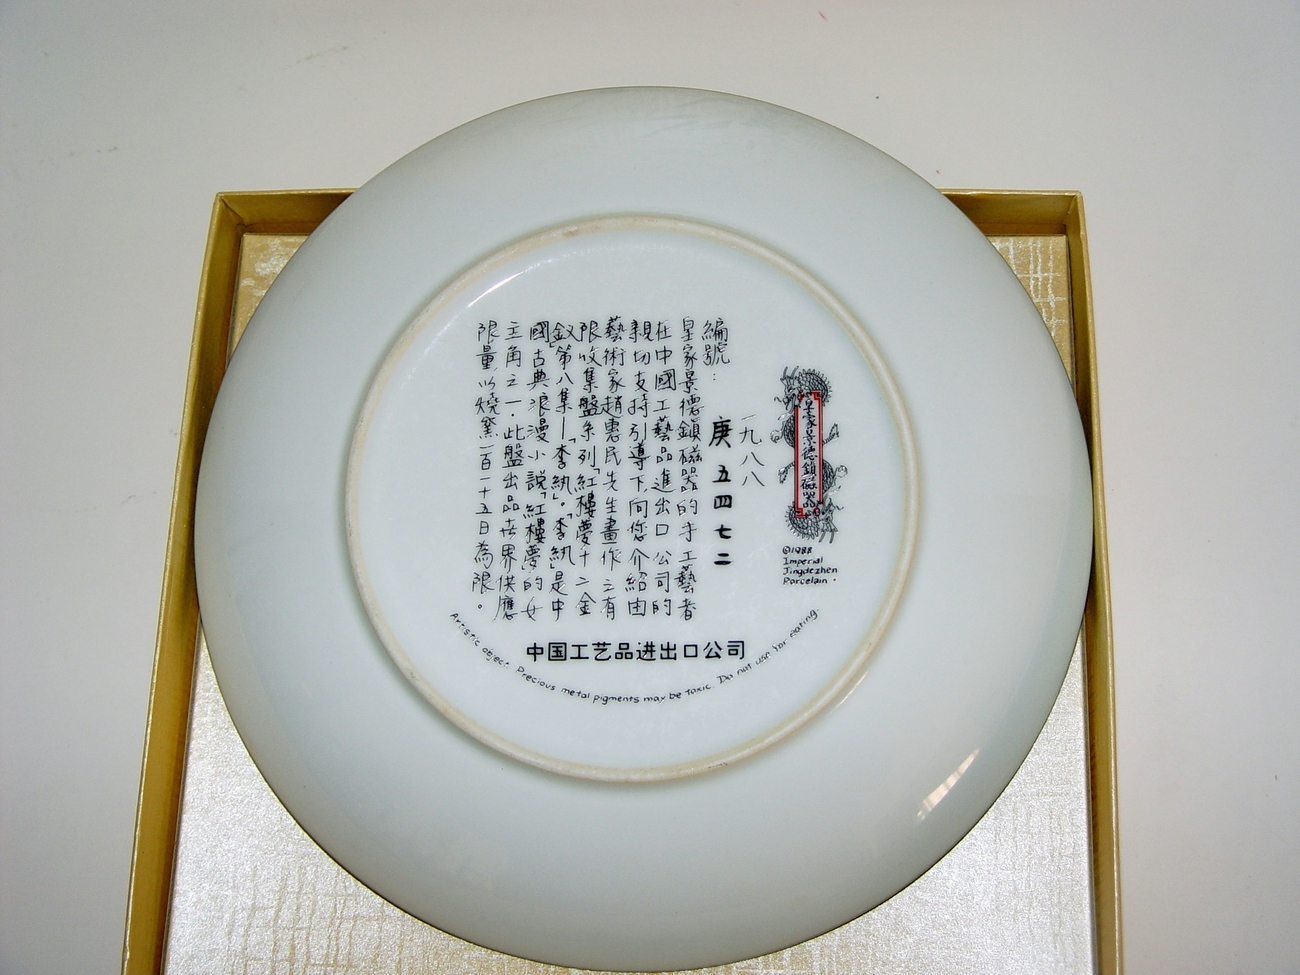 Beauties of the Red Mansion Series Plate # 8, HSI-CHUN  by Zhao Hui Min